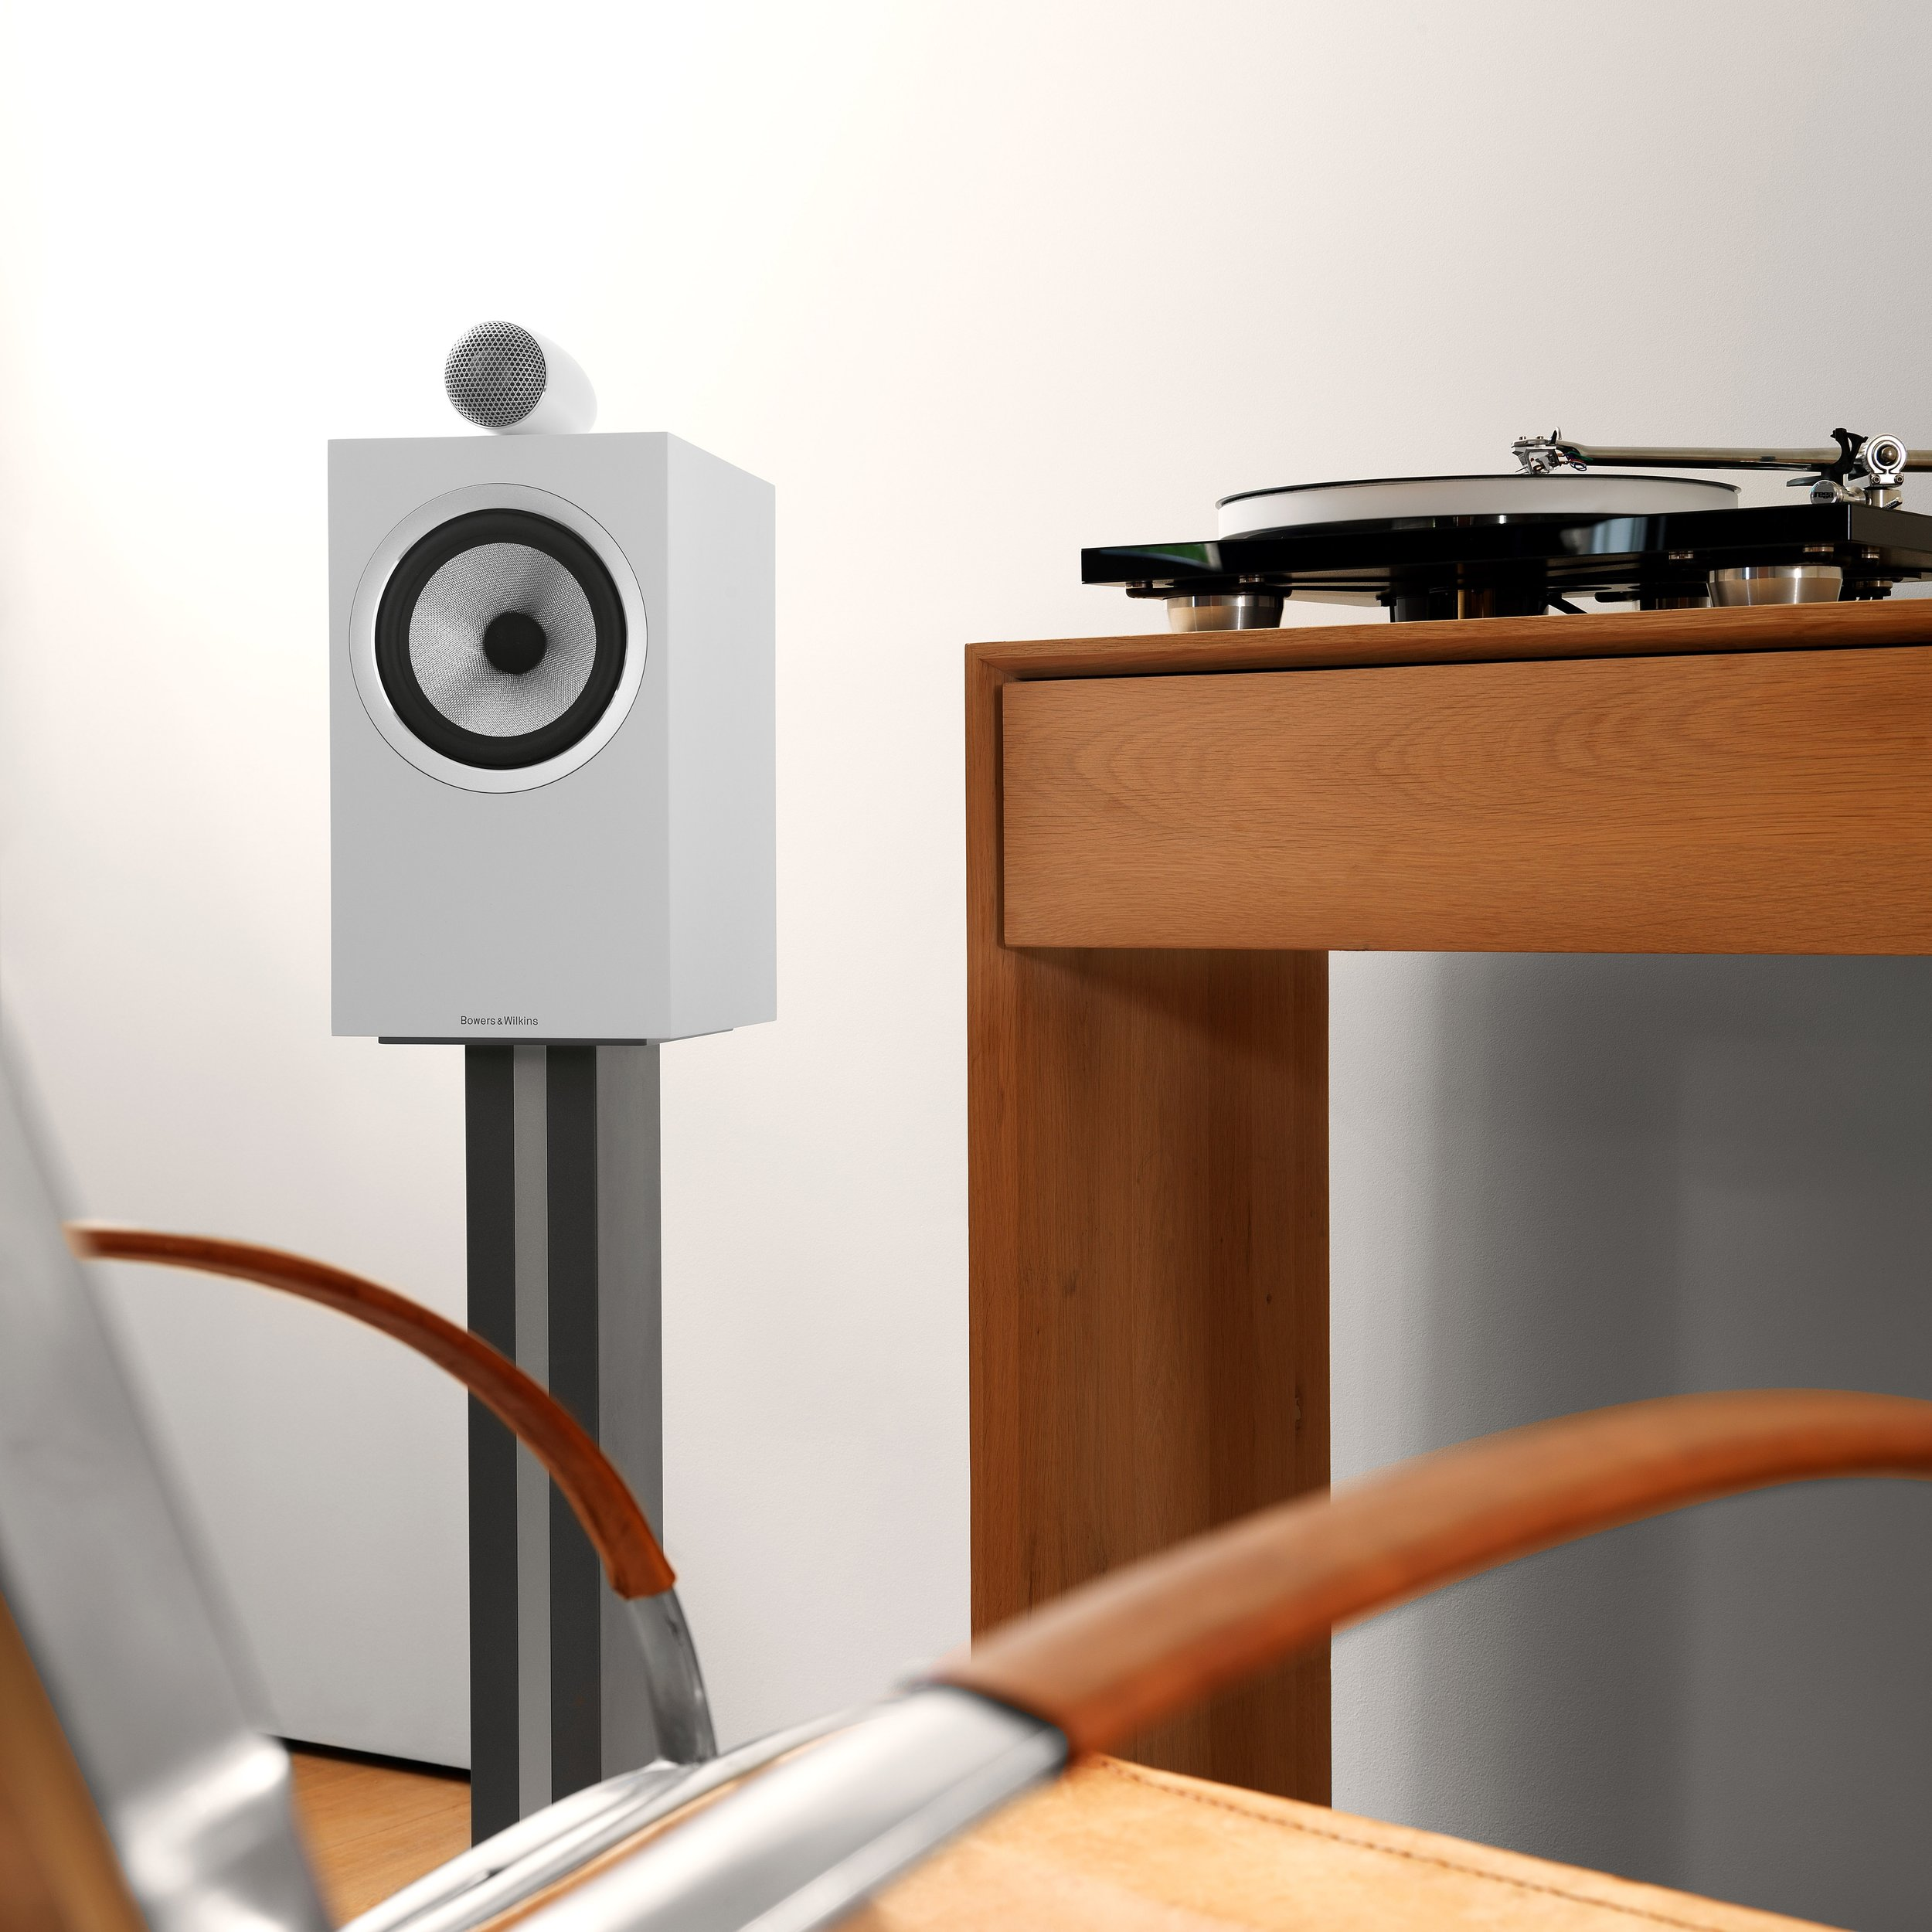 705-S2-Satin-White-on-Stand-with-Record-Player-Detail CROP.jpg